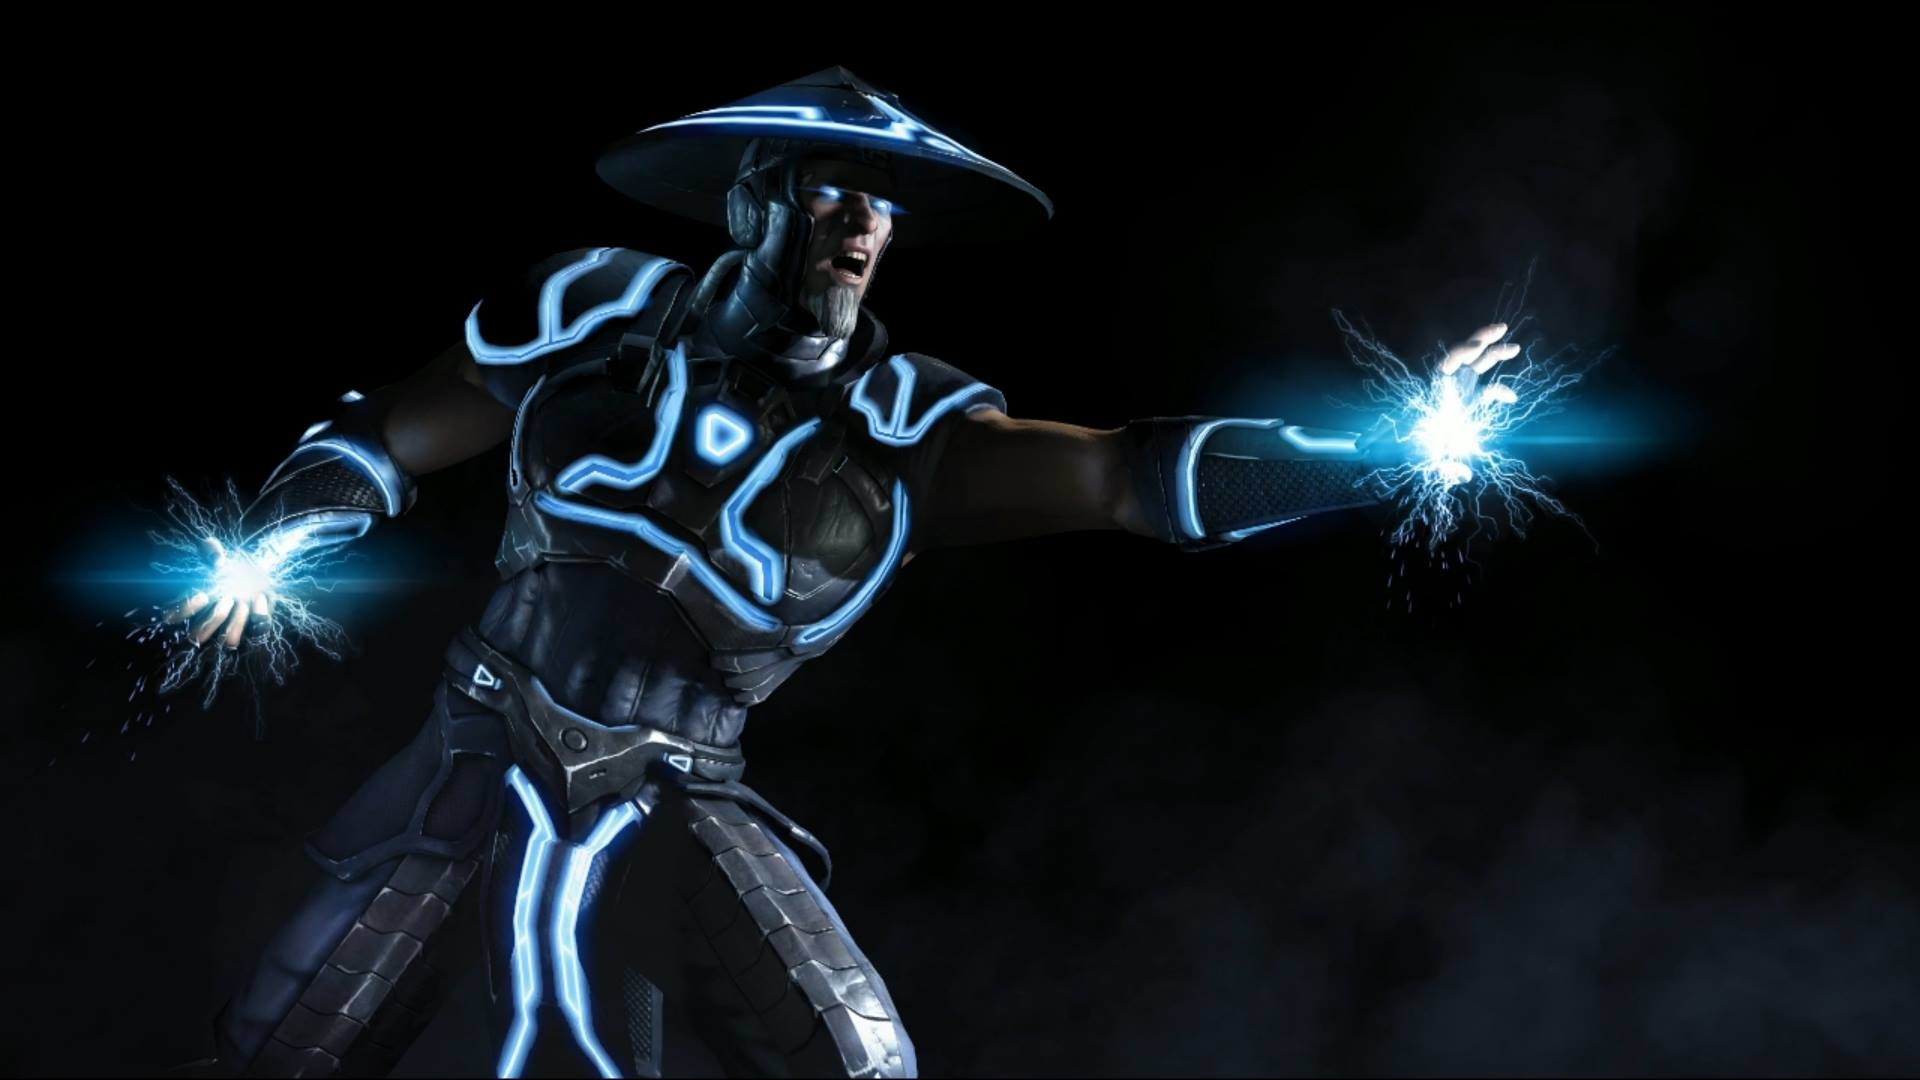 Mortal Kombat Liu Kang Wallpaper 78 Images